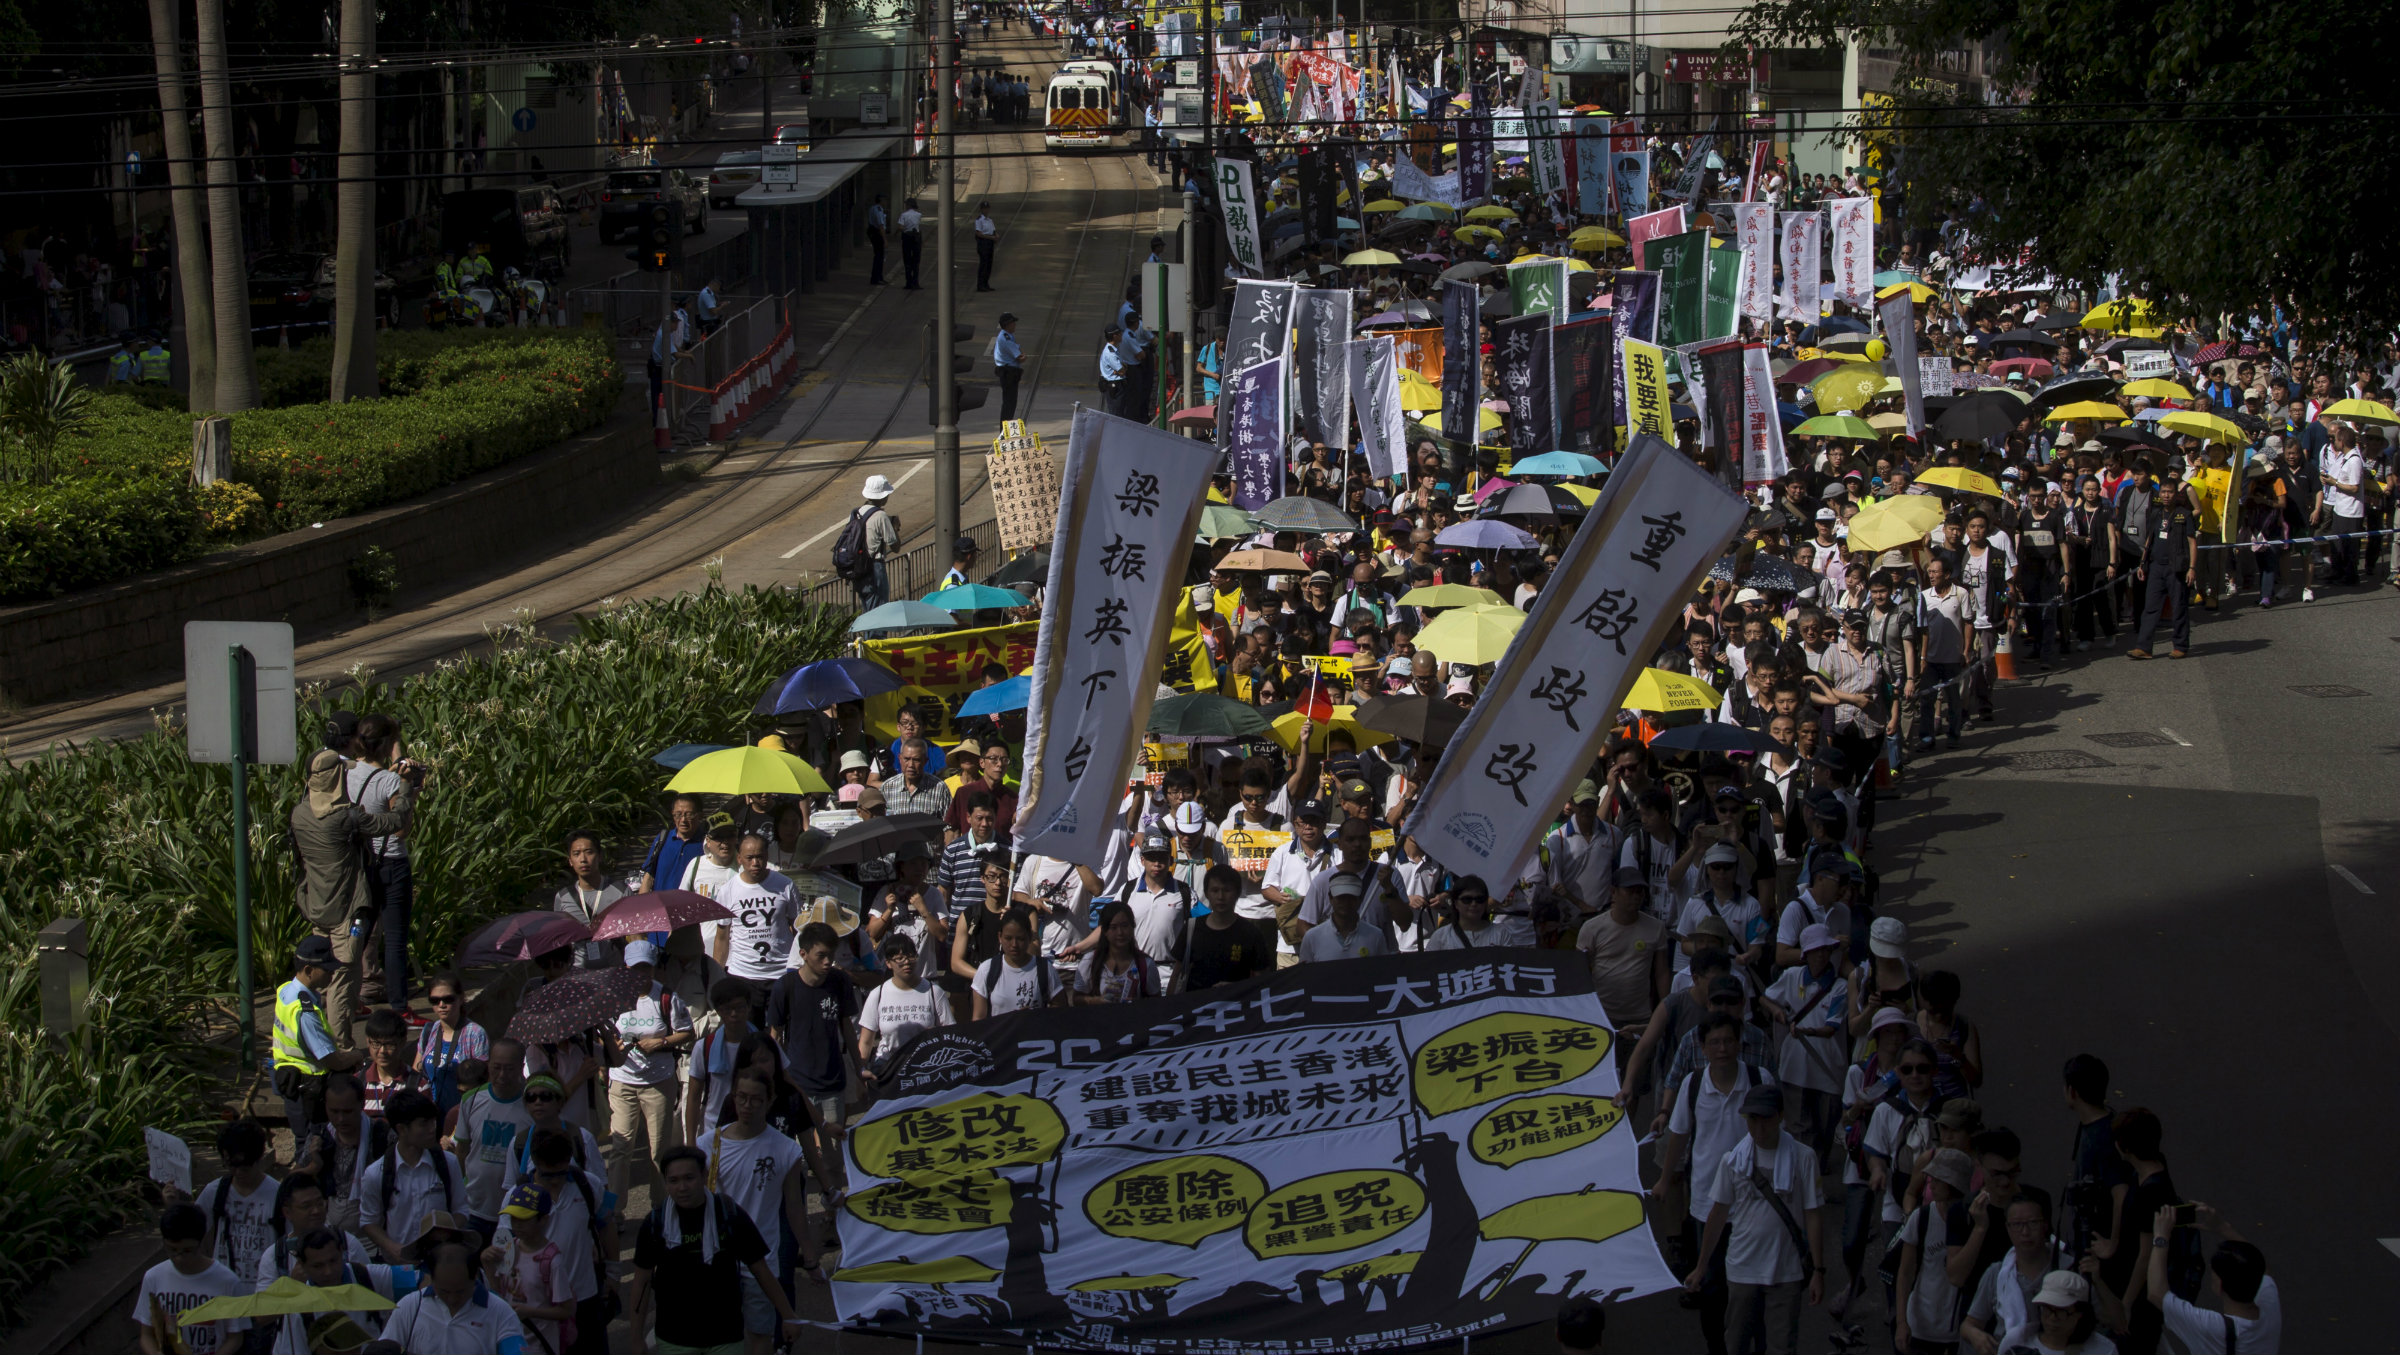 Pro-democracy marchers in Hong Kong on July 1.